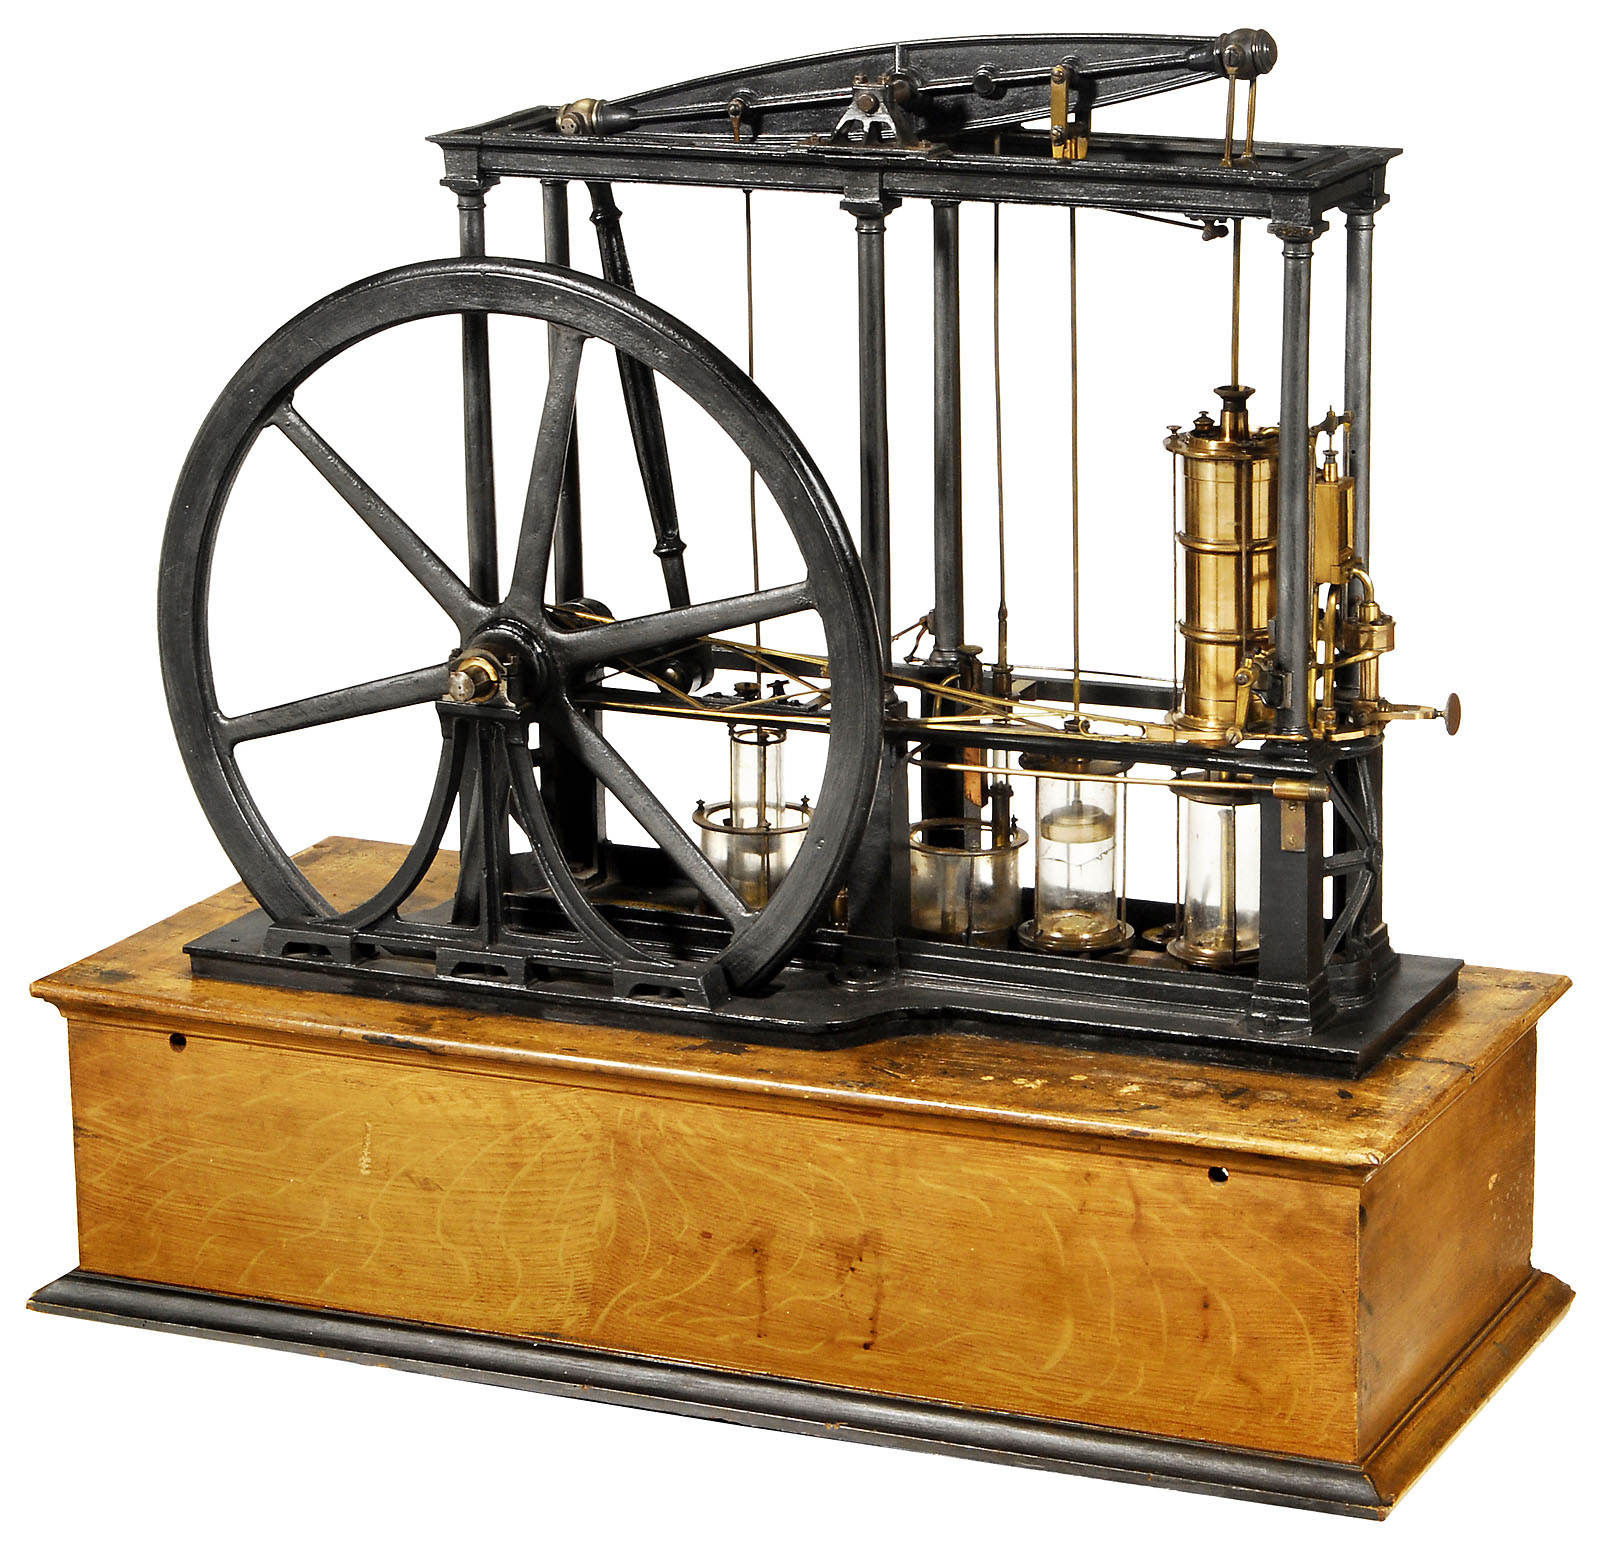 james watt steam engine diagram electron dot for nh3 powered get free image about wiring